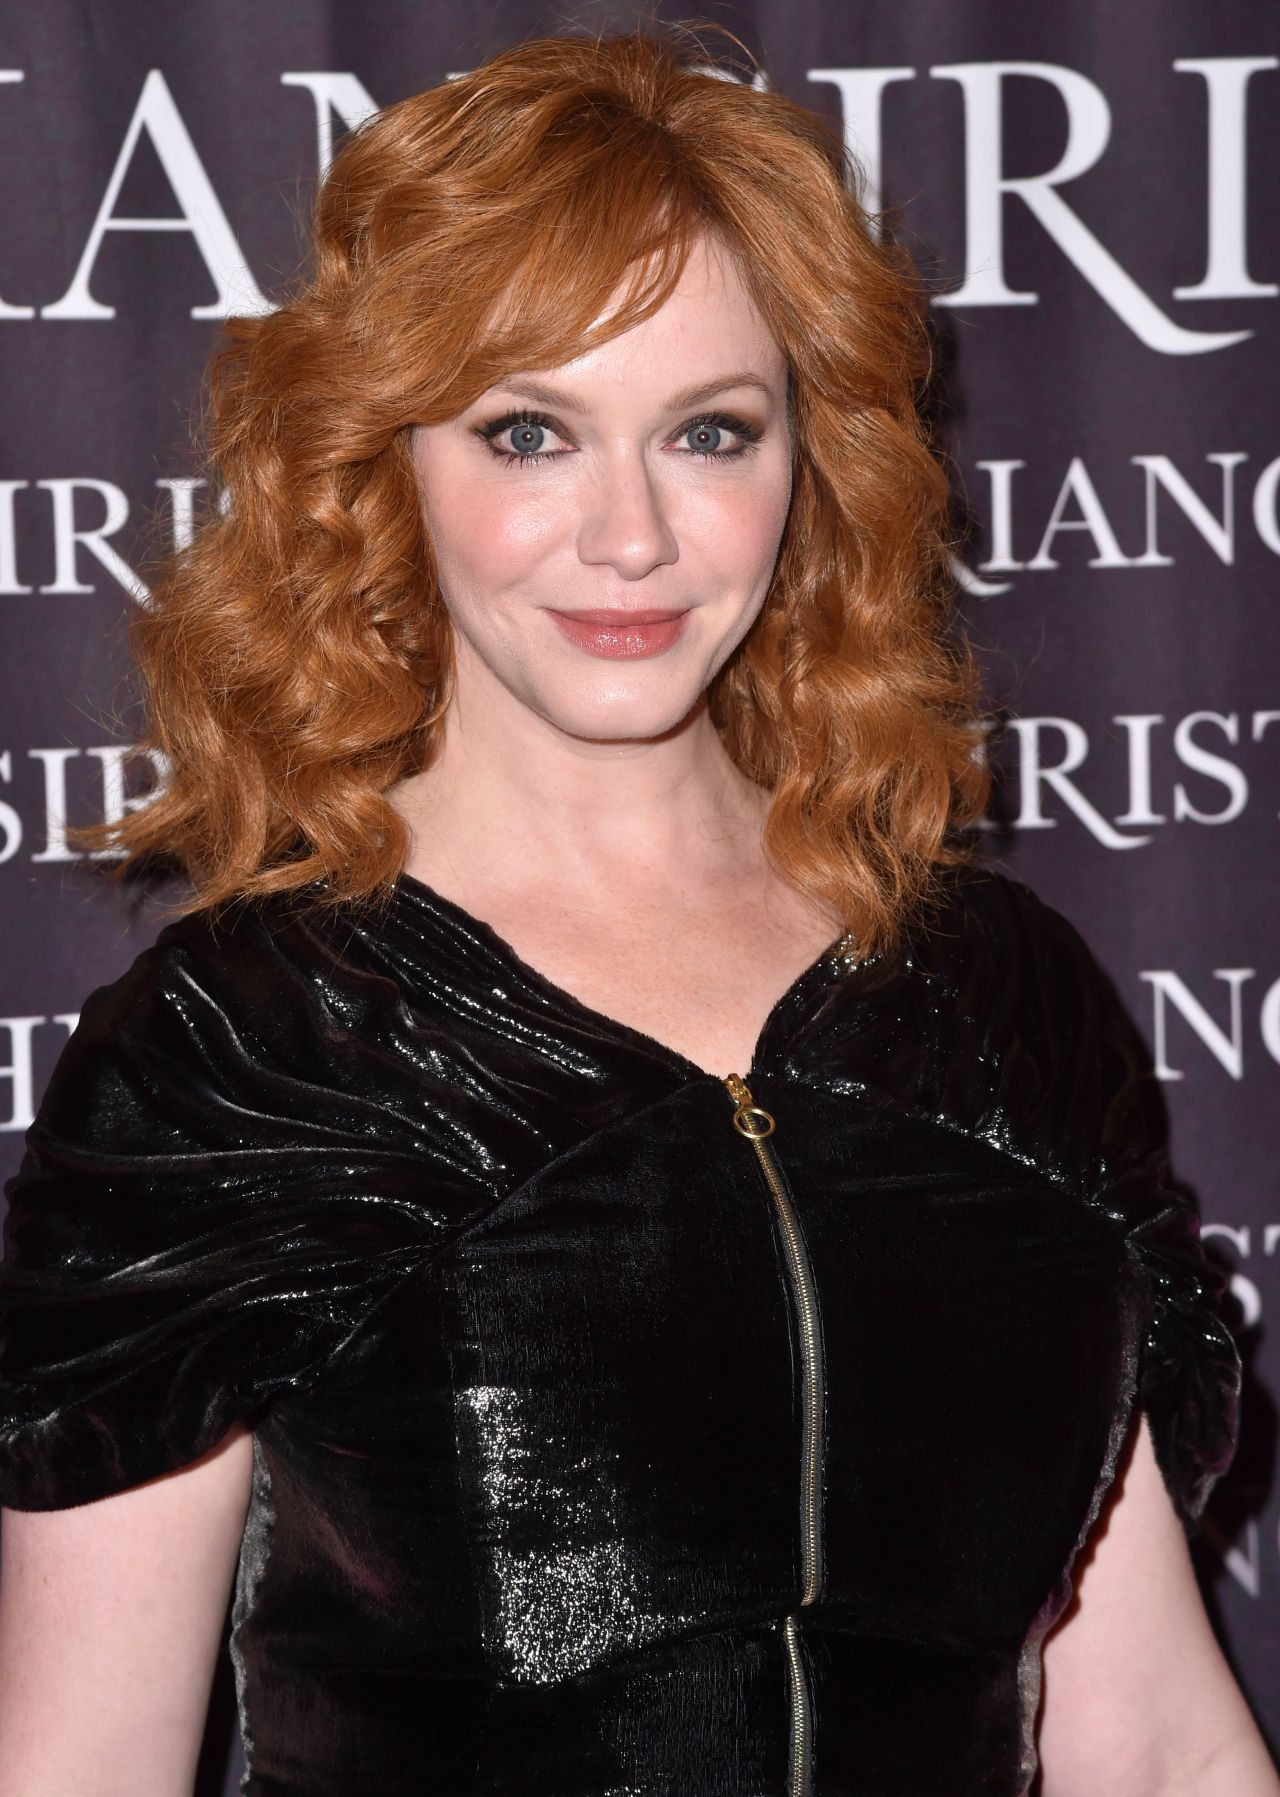 Christina Hendricks Latest Photos - Page 2 of 10 - CelebMafia Christina Hendricks